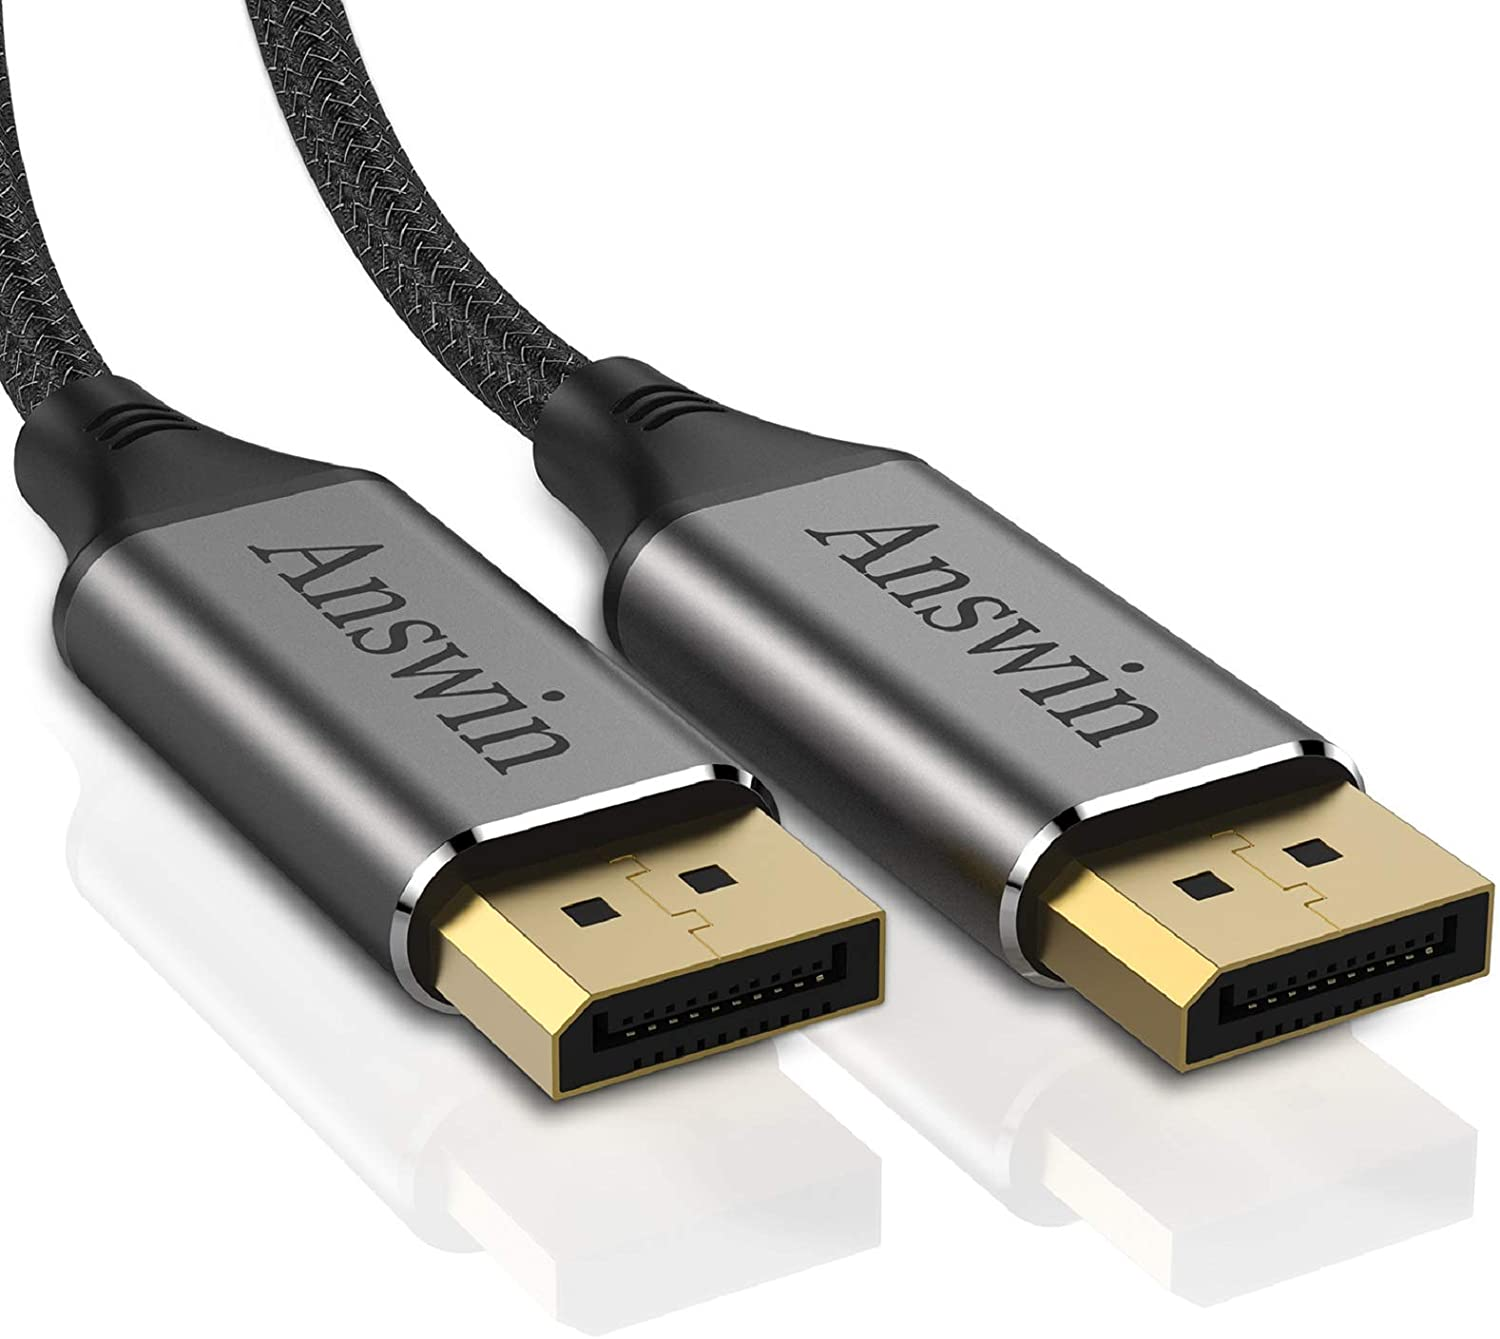 Display Port Cable Ultra High Speed DisplayPort to DisplayPort Cable for Laptop PC TV -Grey 4K@60Hz, 2K@144Hz SNANSHI 4K DP to DP Cable Nylon Braided - DisplayPort Cable 10 ft